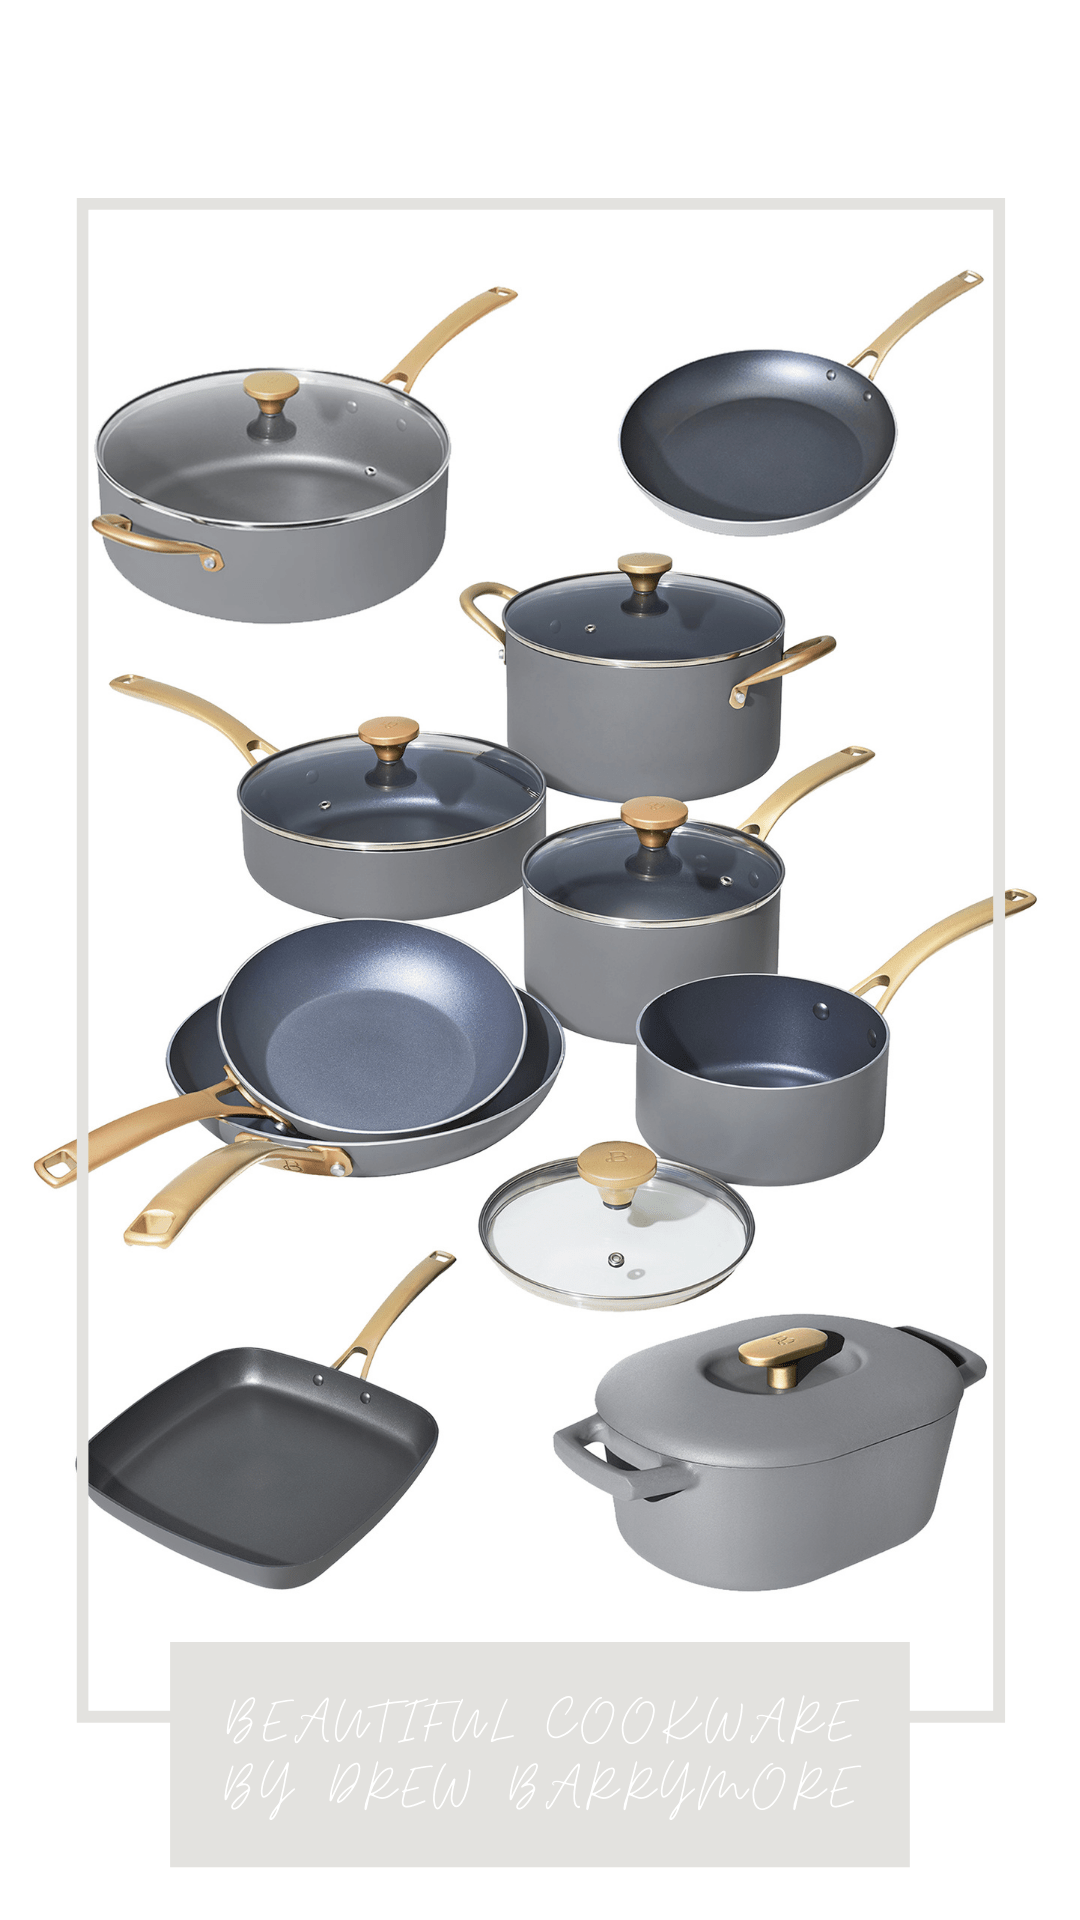 Beautiful Cookware by Drew Barrymore